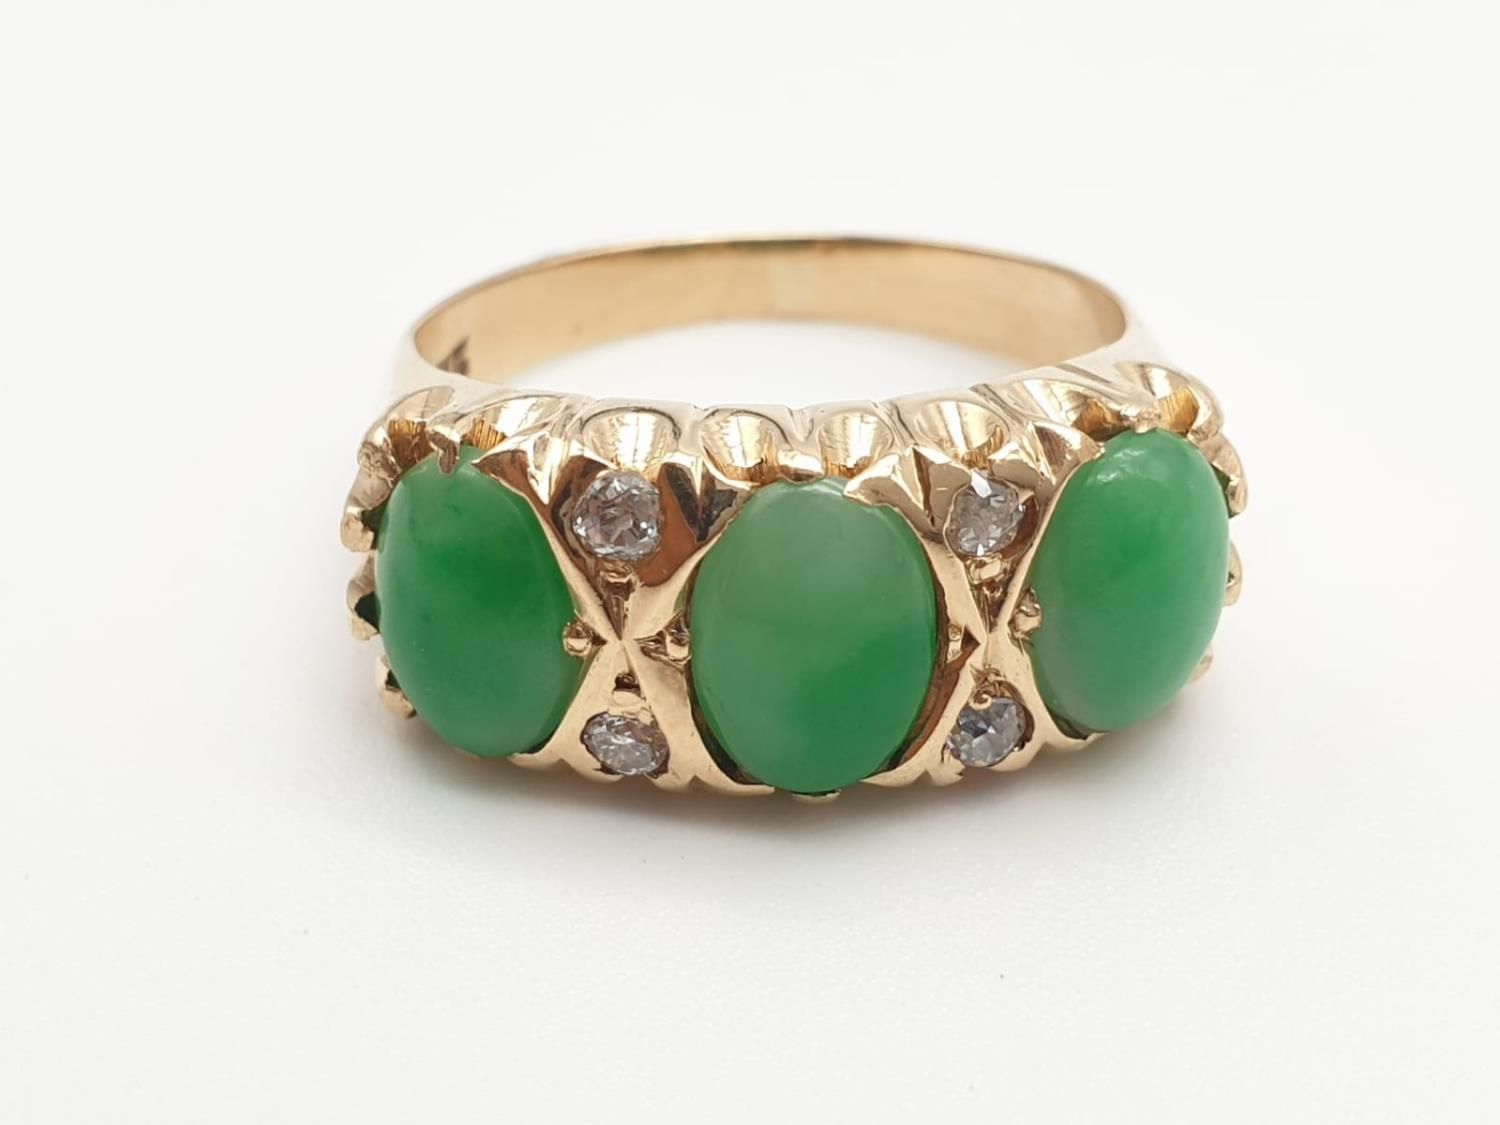 14k yellow gold antique ring with trilogy green jadeite and decorated with diamonds, weight 8.6g and